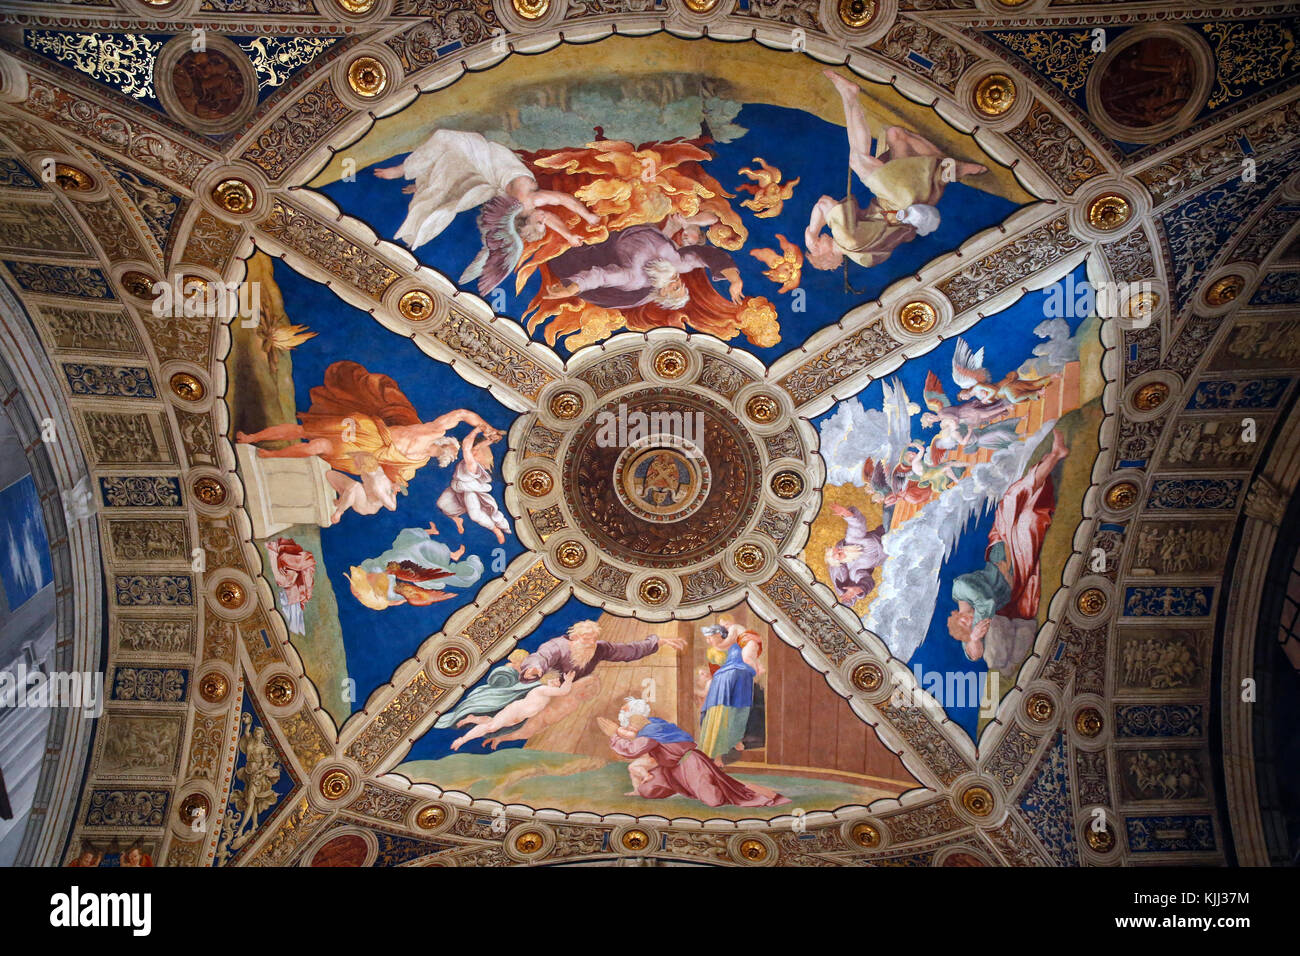 Vatican museums, Rome. Room of Heliodorus. Raphael. Italy. - Stock Image